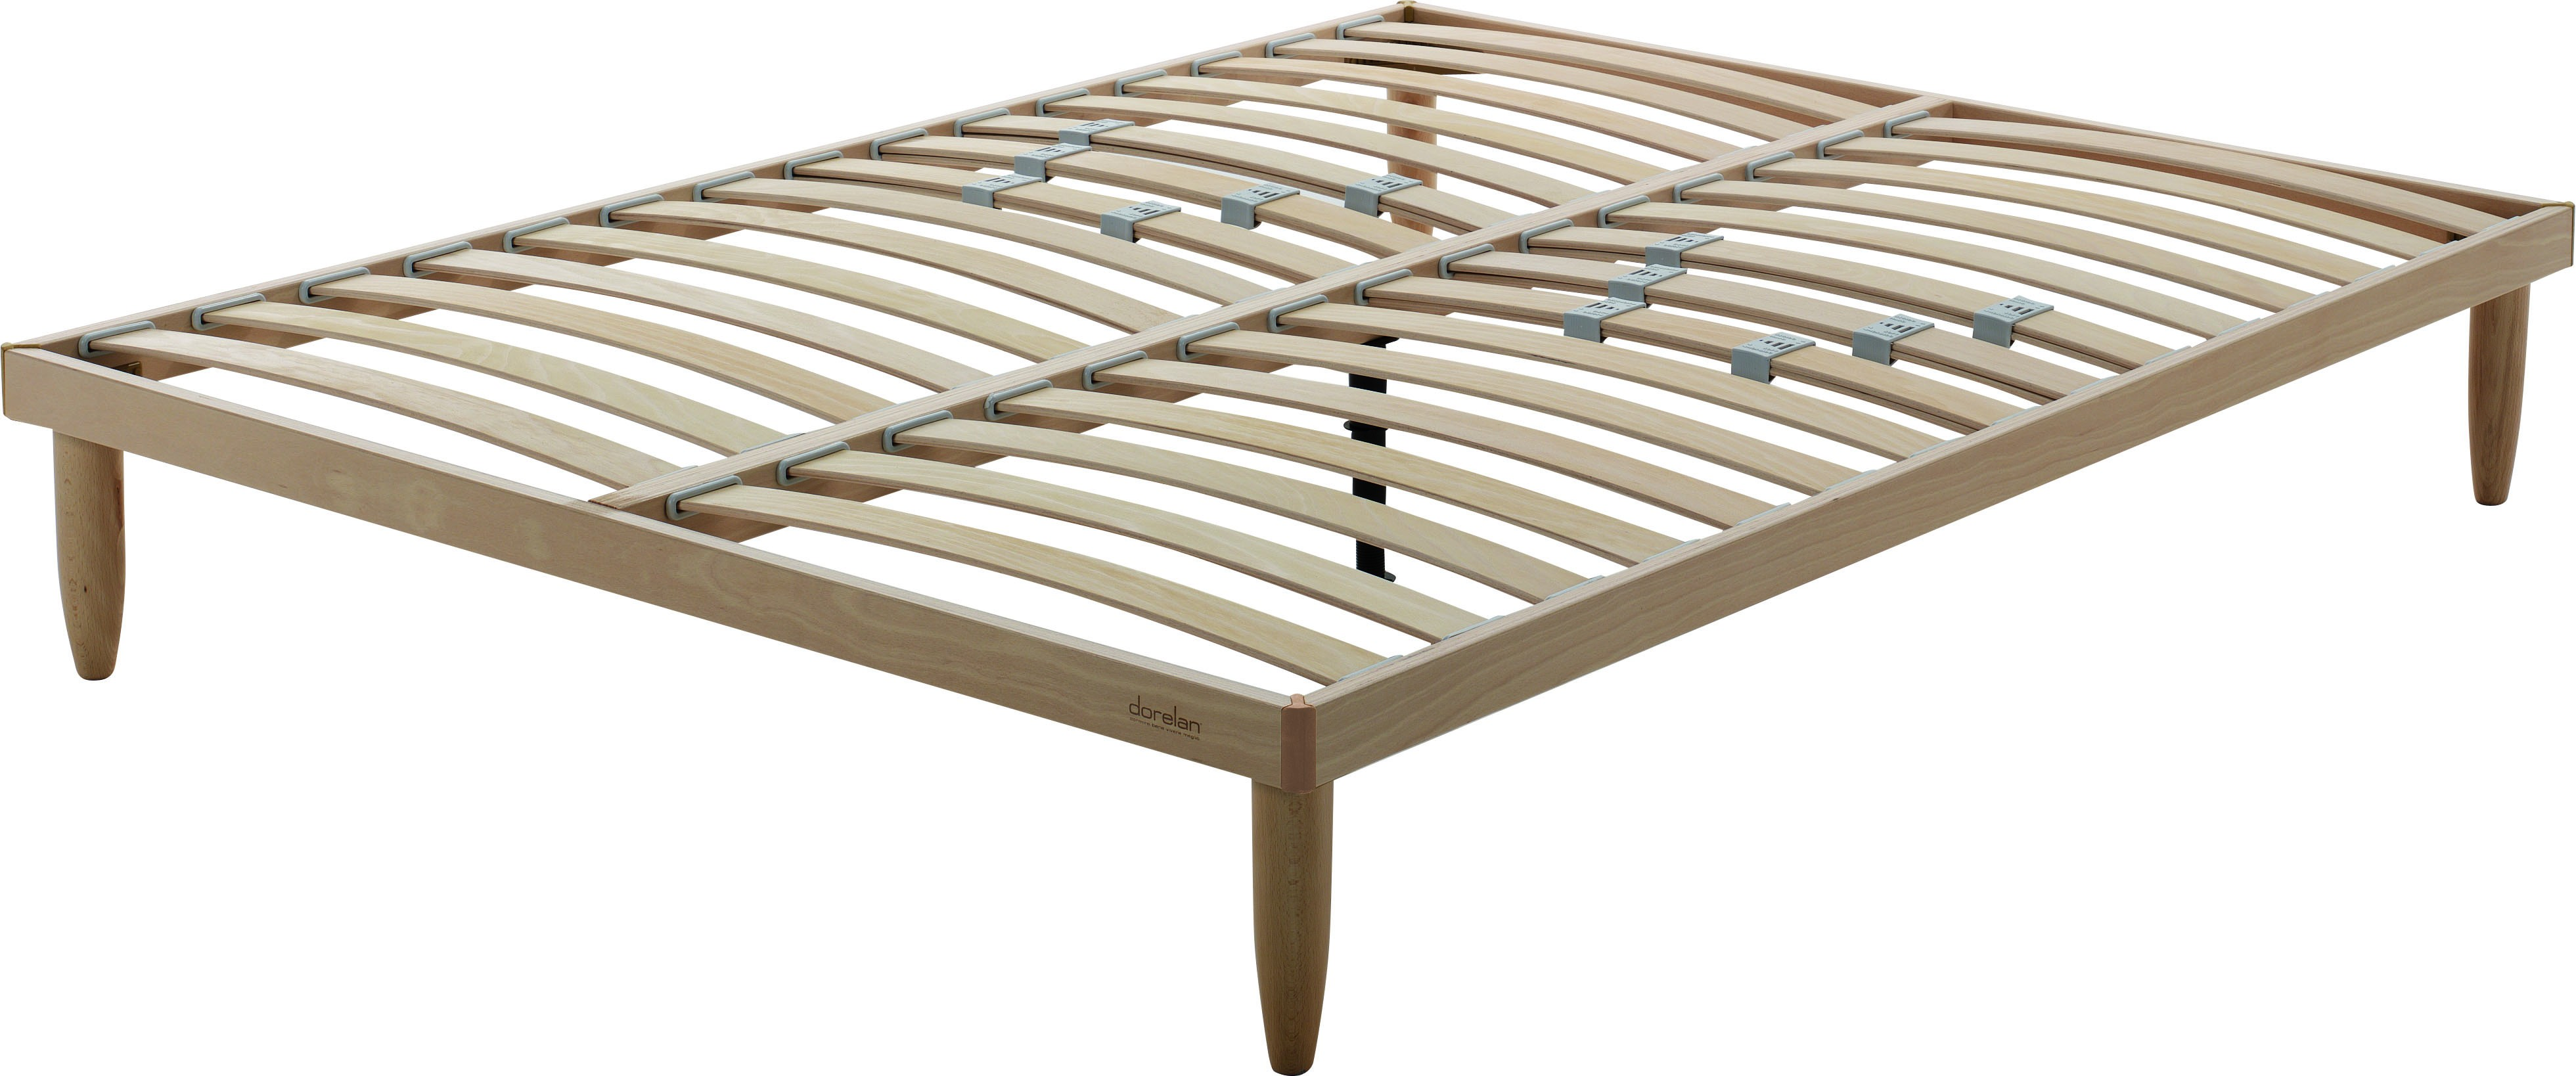 Rete Sleep Bed Base  F.